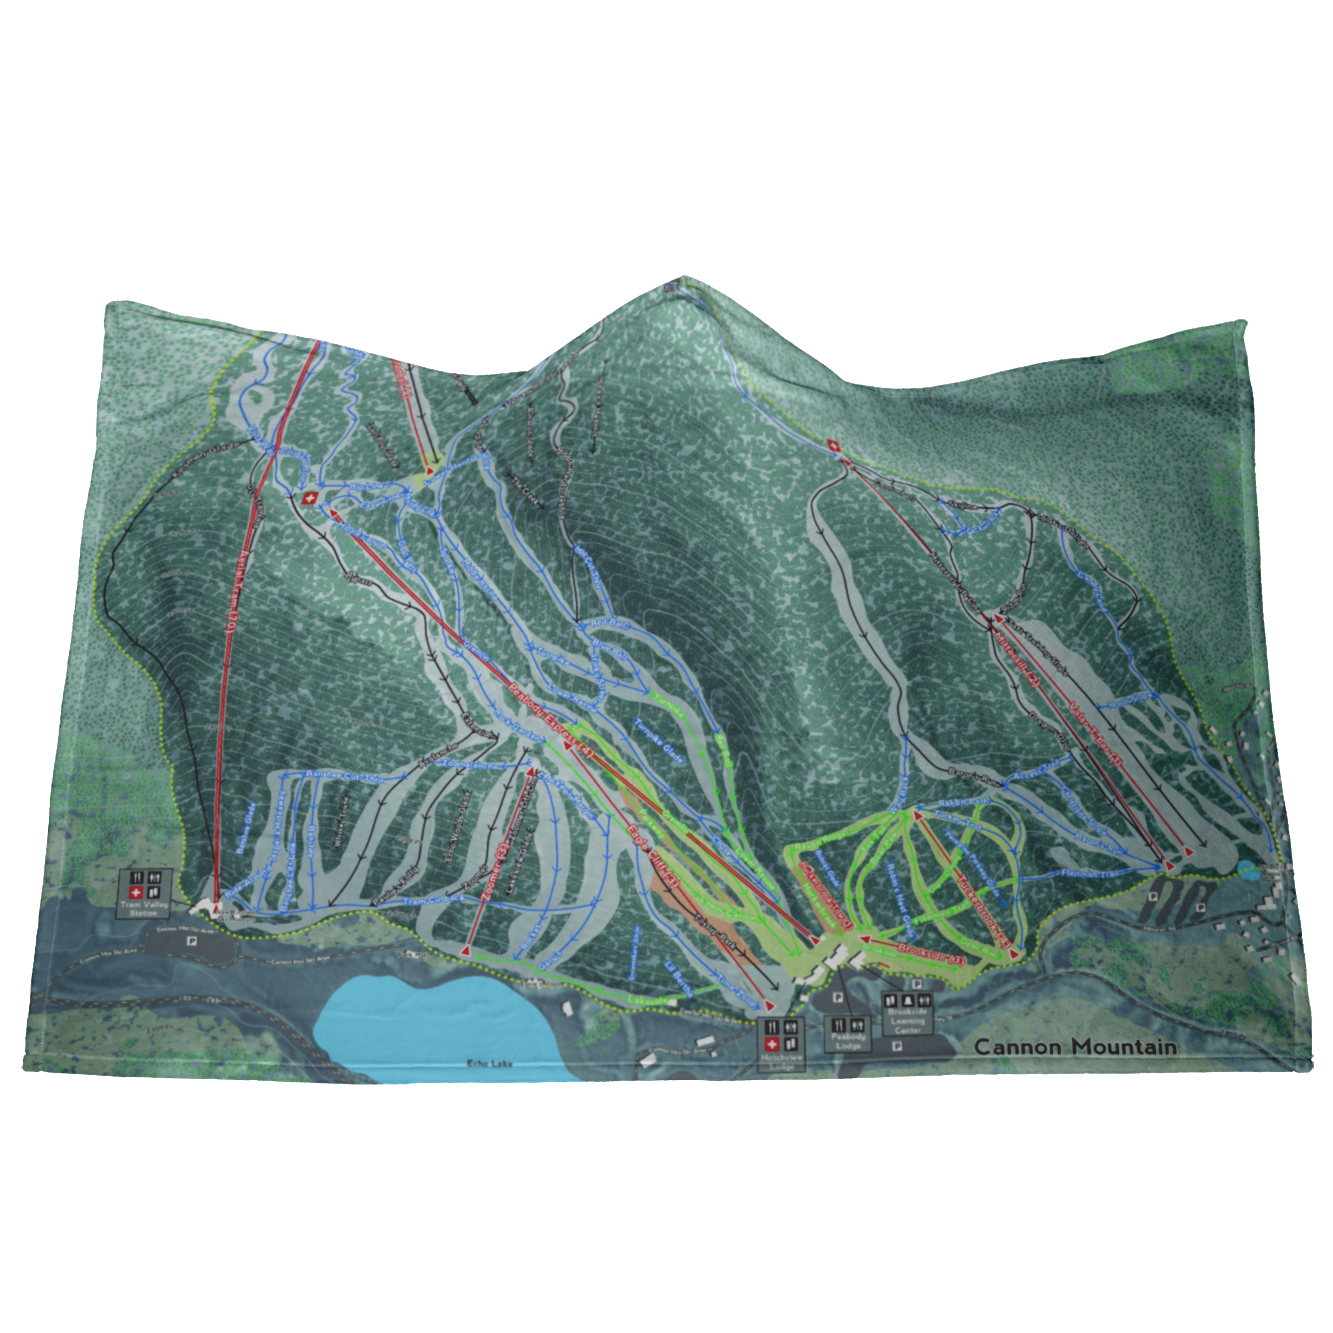 Cannon Mountain, New Hampshire Ski Resort Map - Hooded Blanket